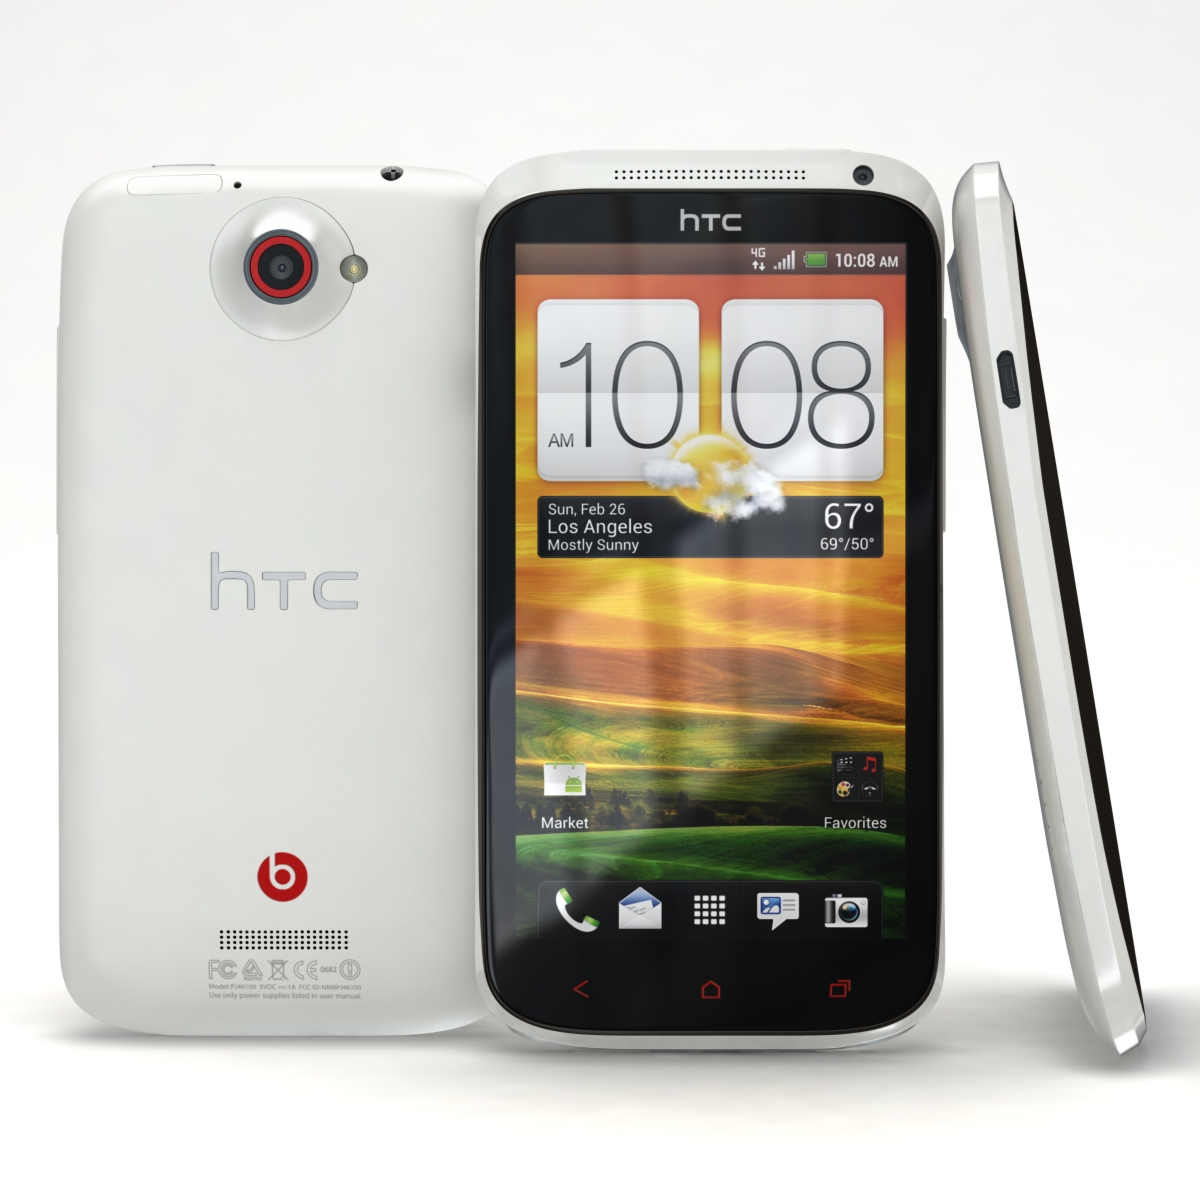 htc one x + polar white 3d model 3ds max fbx c4d lwo obj 151396